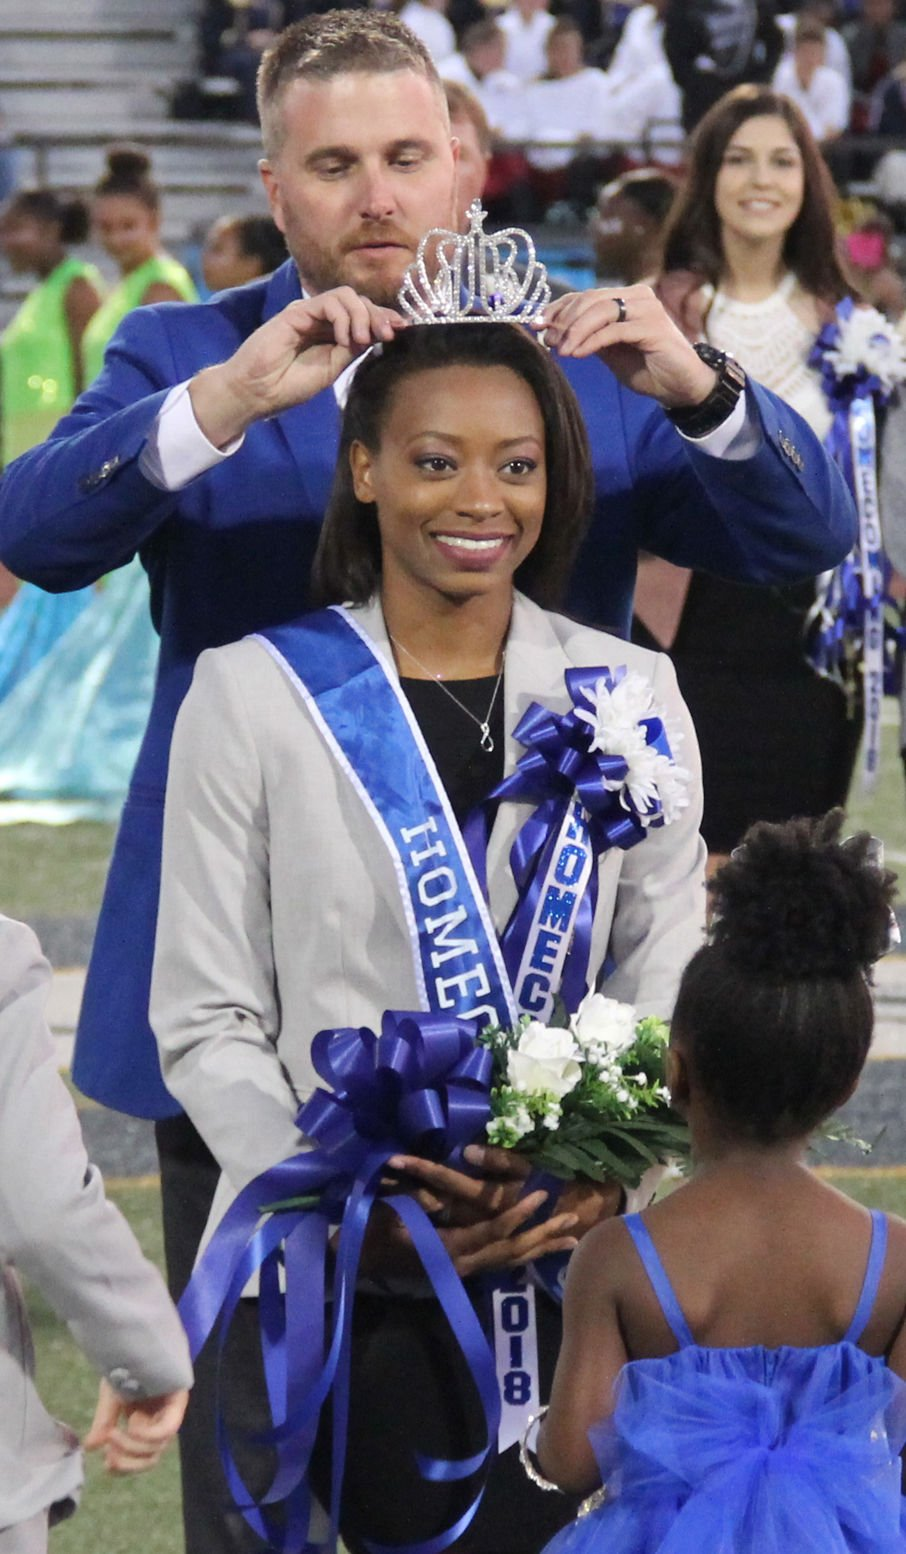 Kaja James crowned as Stone High Homecoming Queen 2018